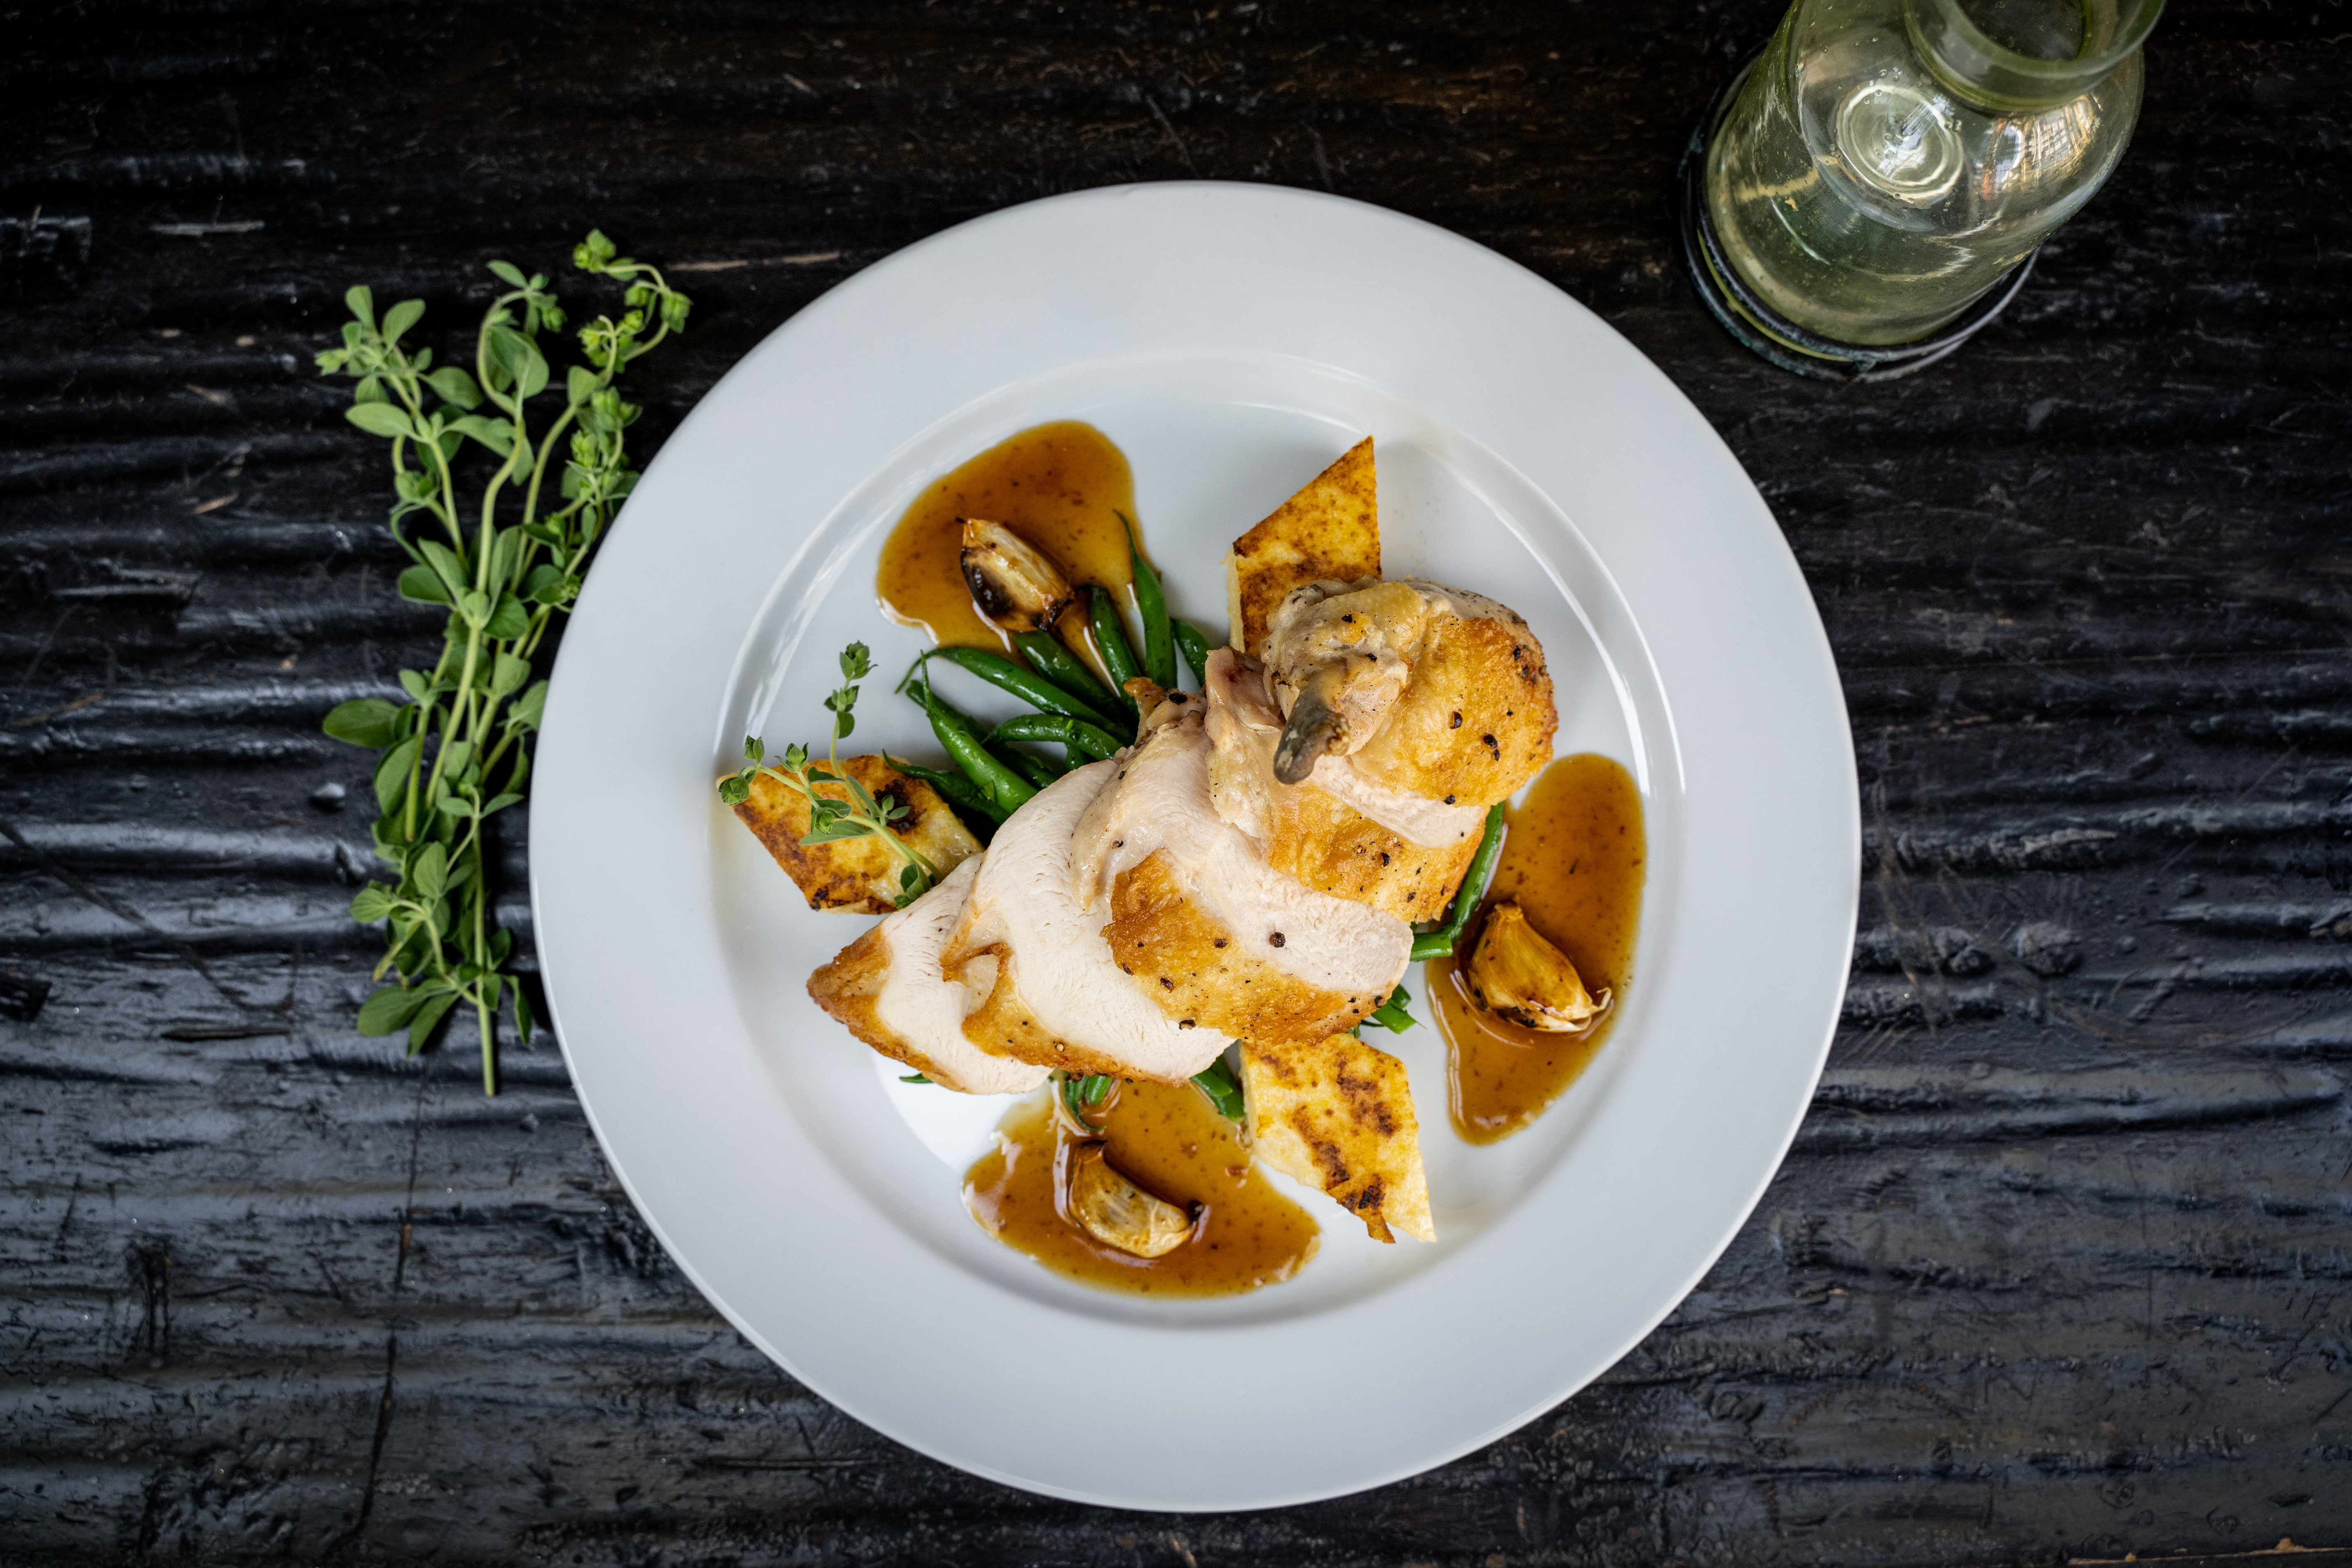 The chicken breast at Harlowe restaurant in West Hollywood, California